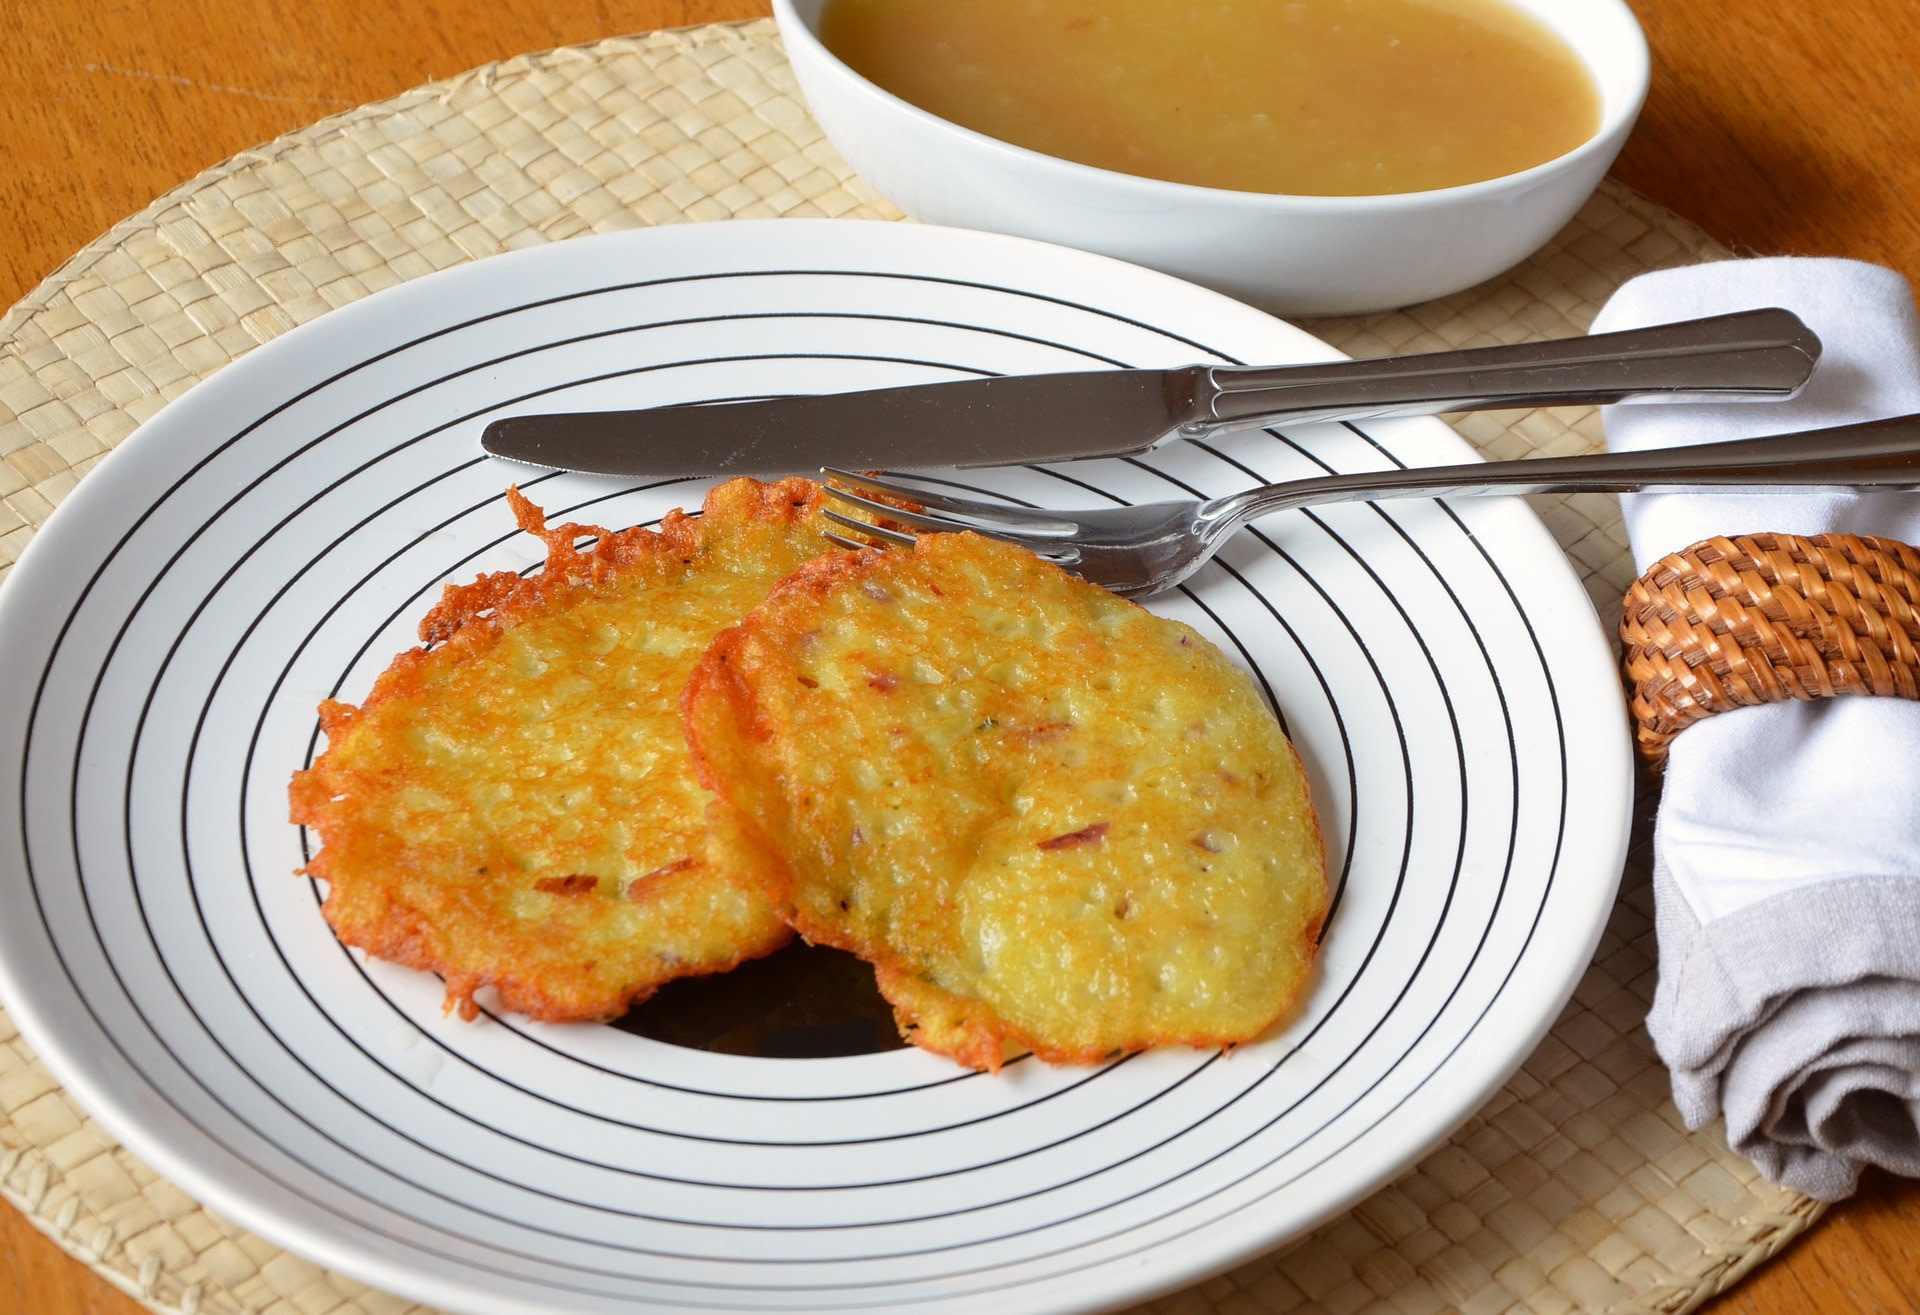 Recipes for our favourite fritters from Appliance City